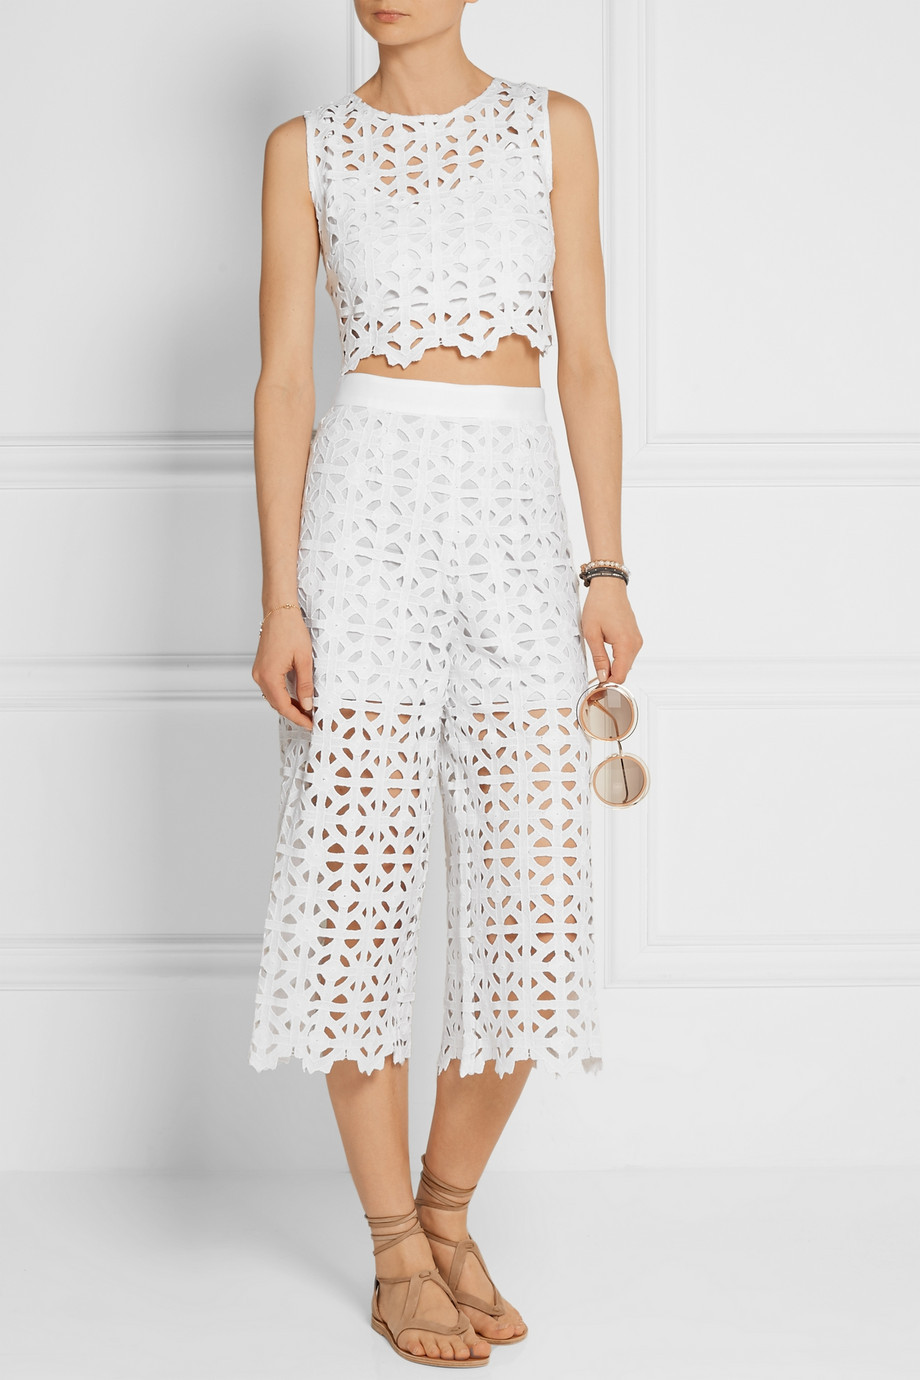 Miguelina Ruby cropped crocheted macramé cotton top $260